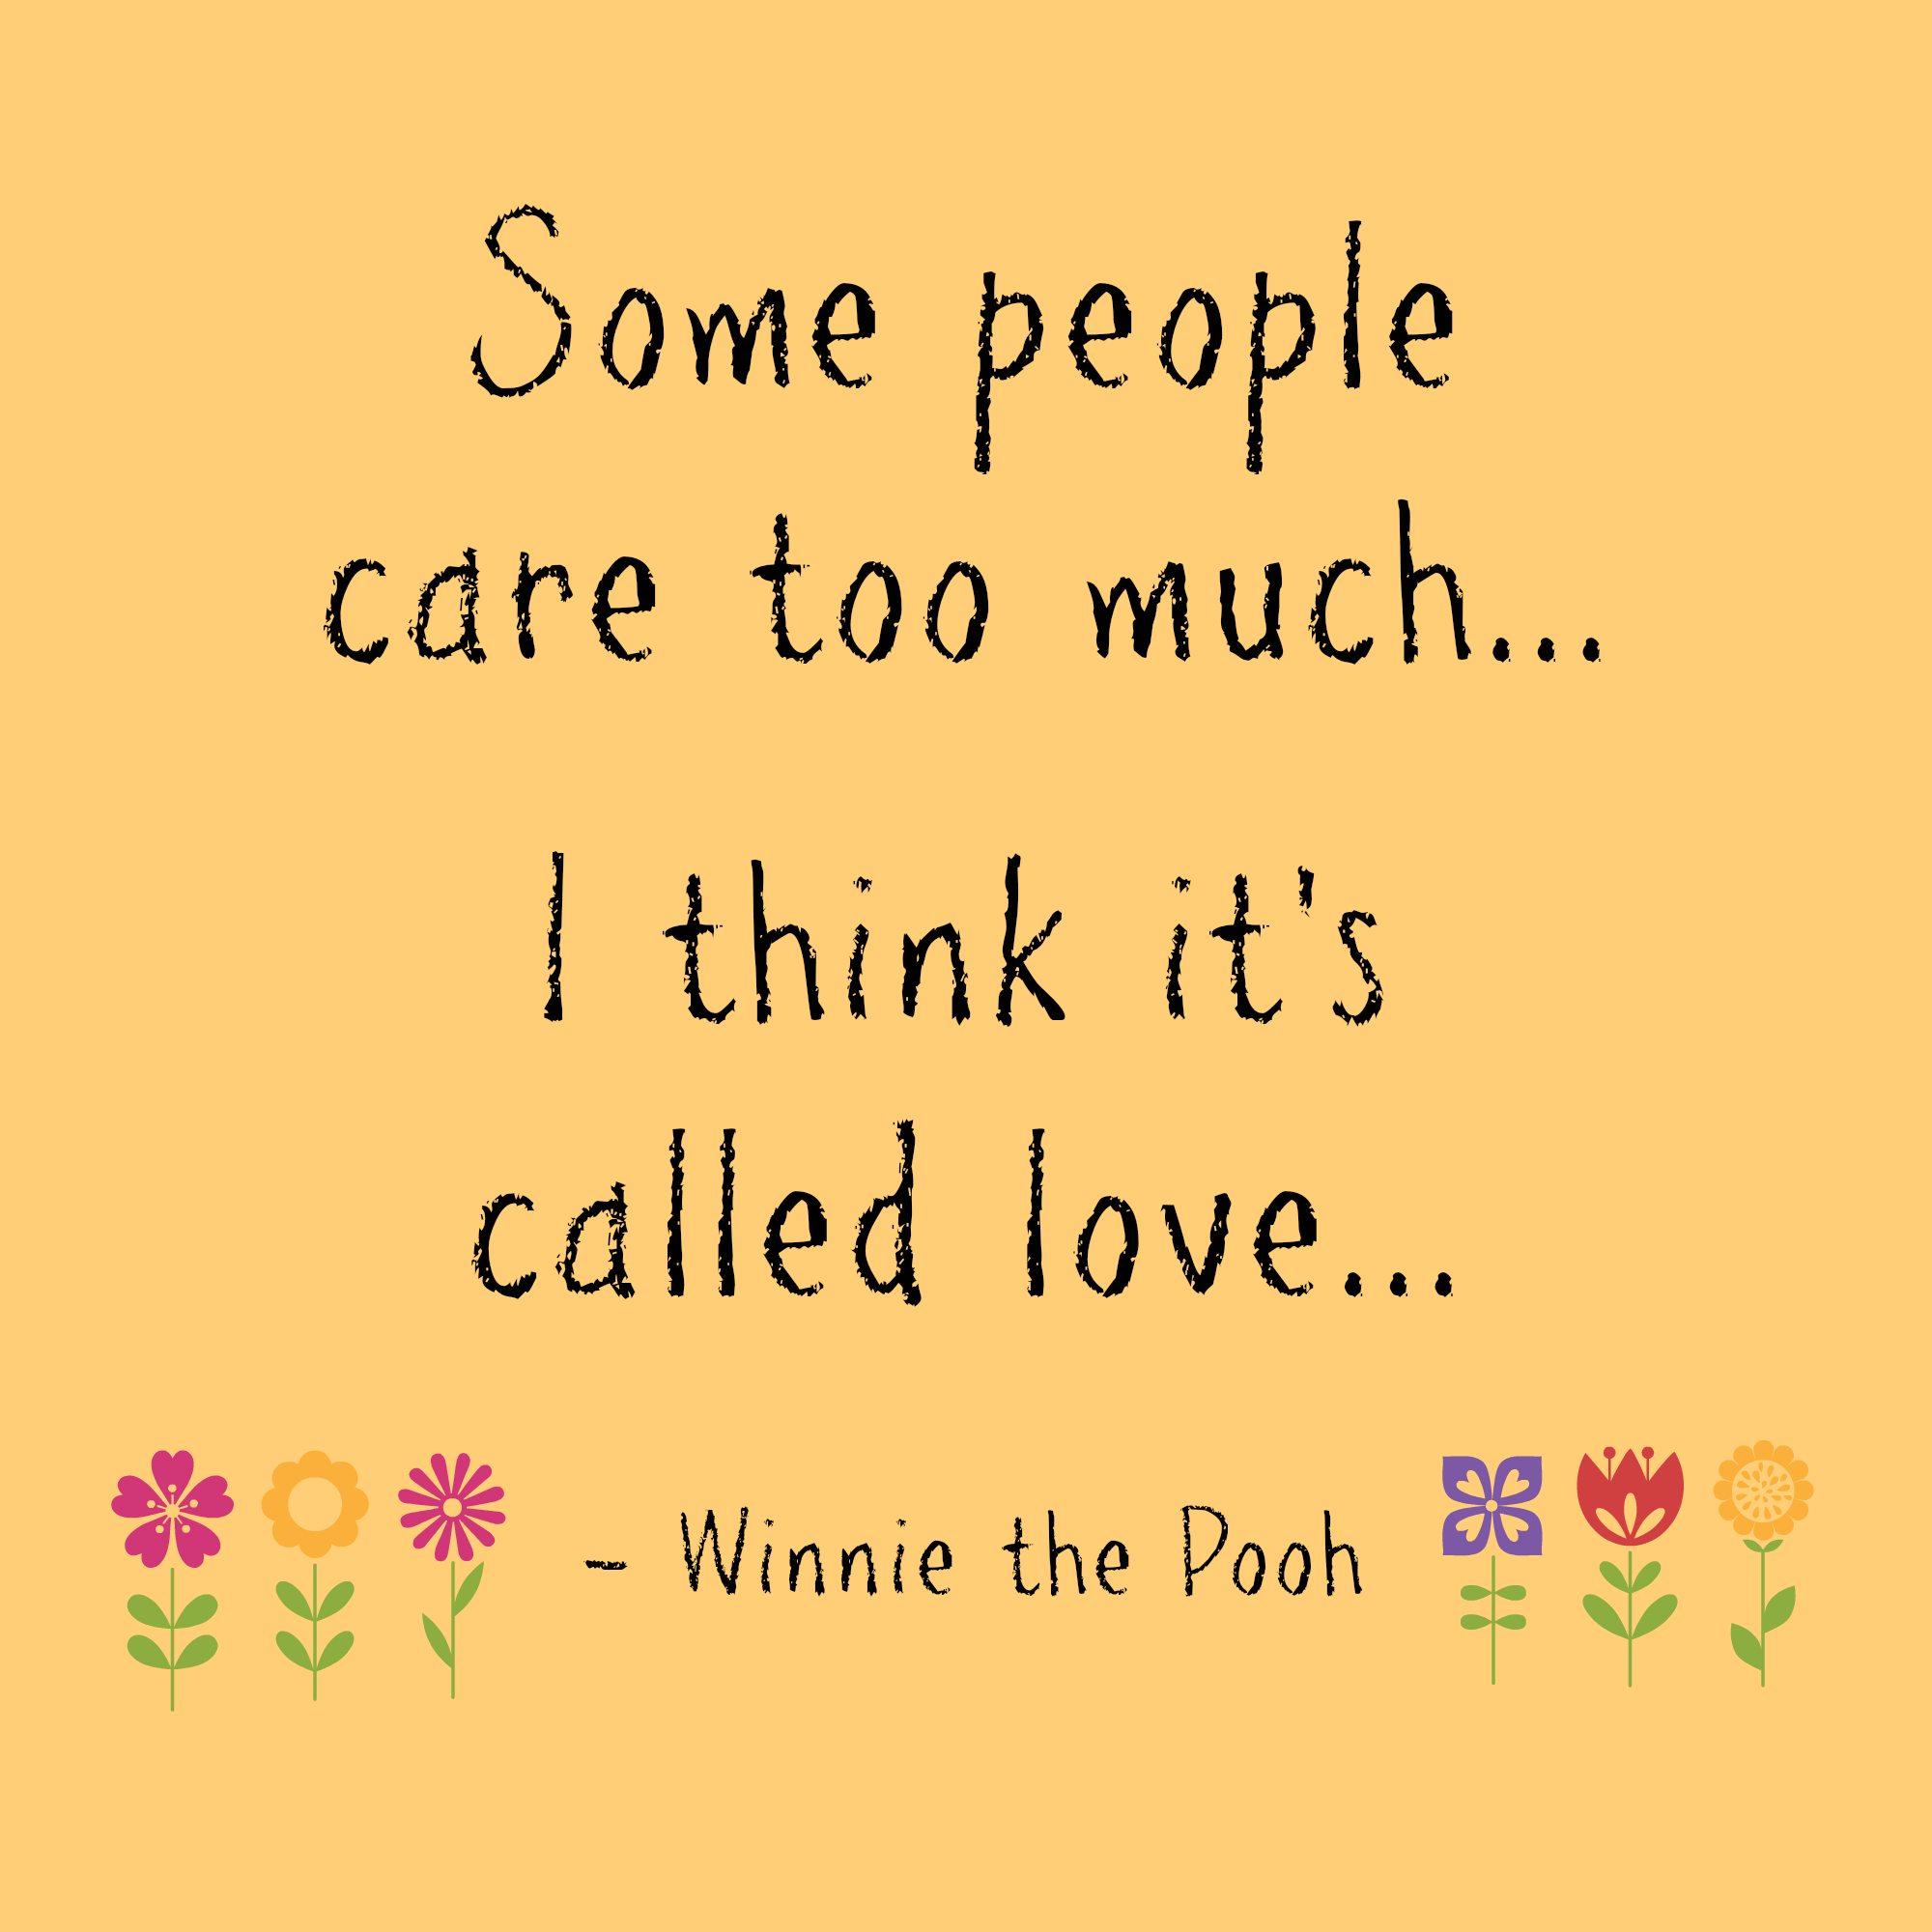 Quotes About Love: Winnie The Pooh Quotes About Love. QuotesGram